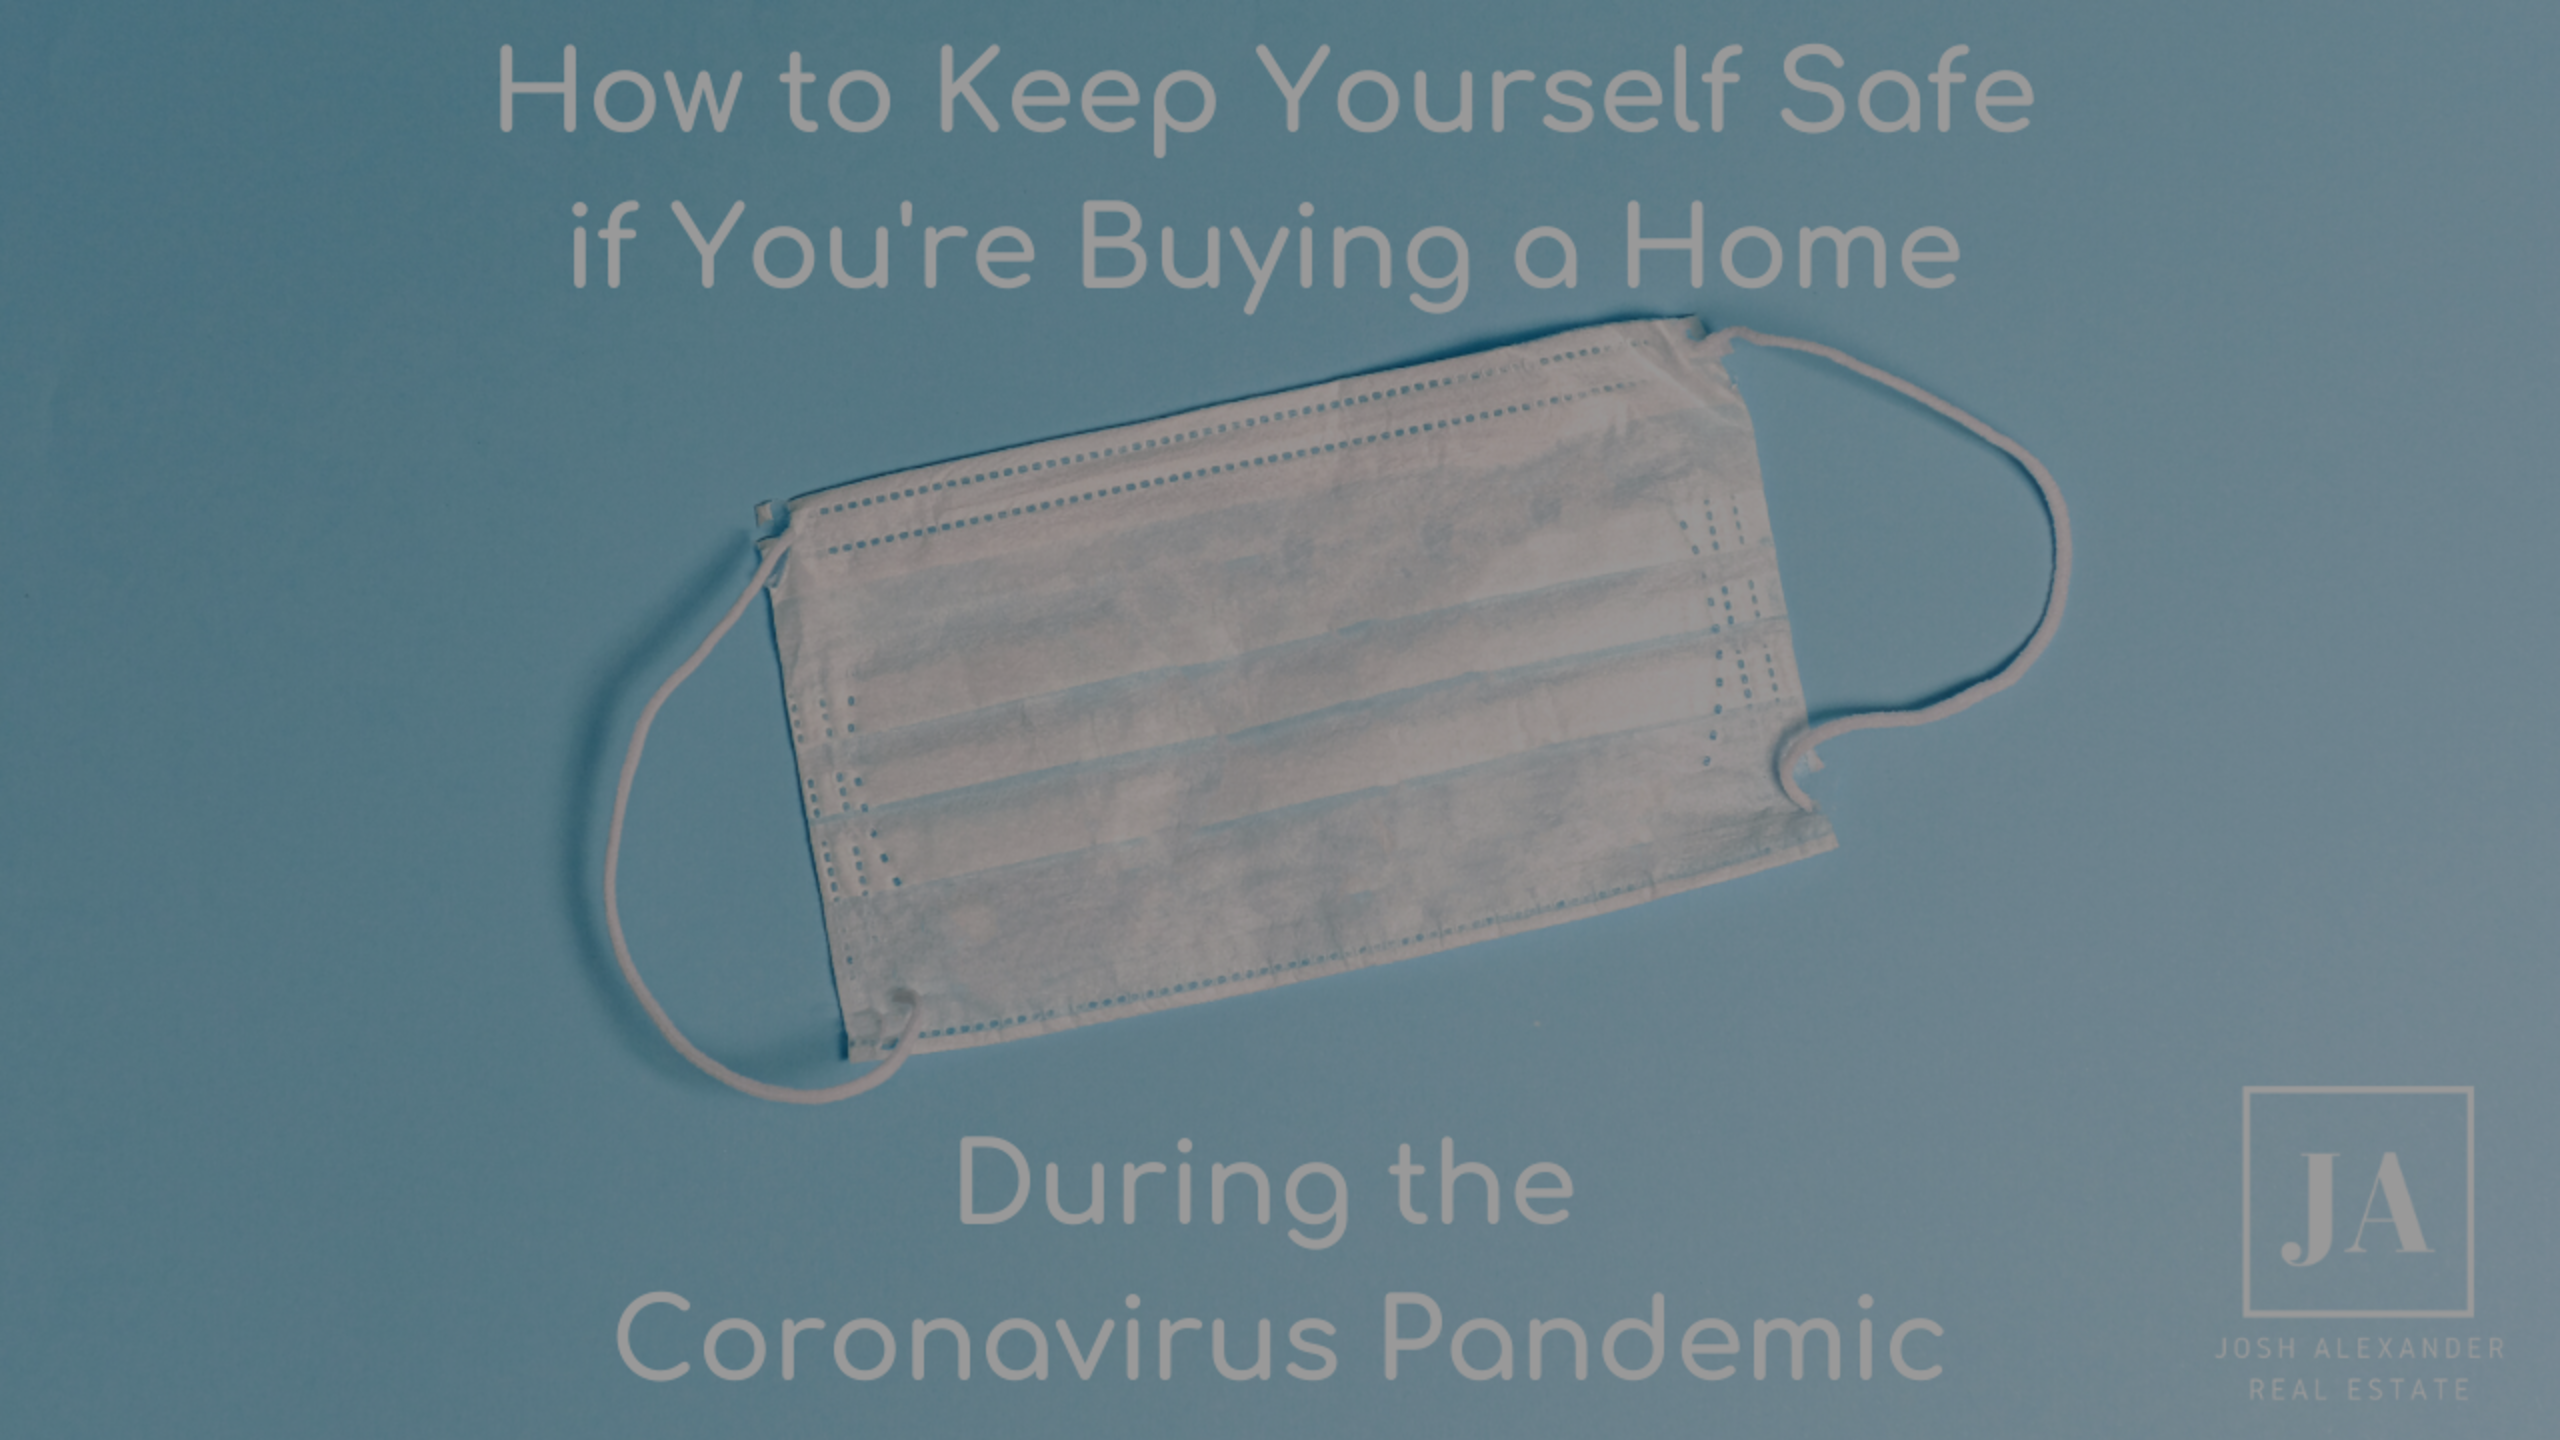 How to Keep Yourself Safe if You're Buying a Home During the Coronavirus Pandemic